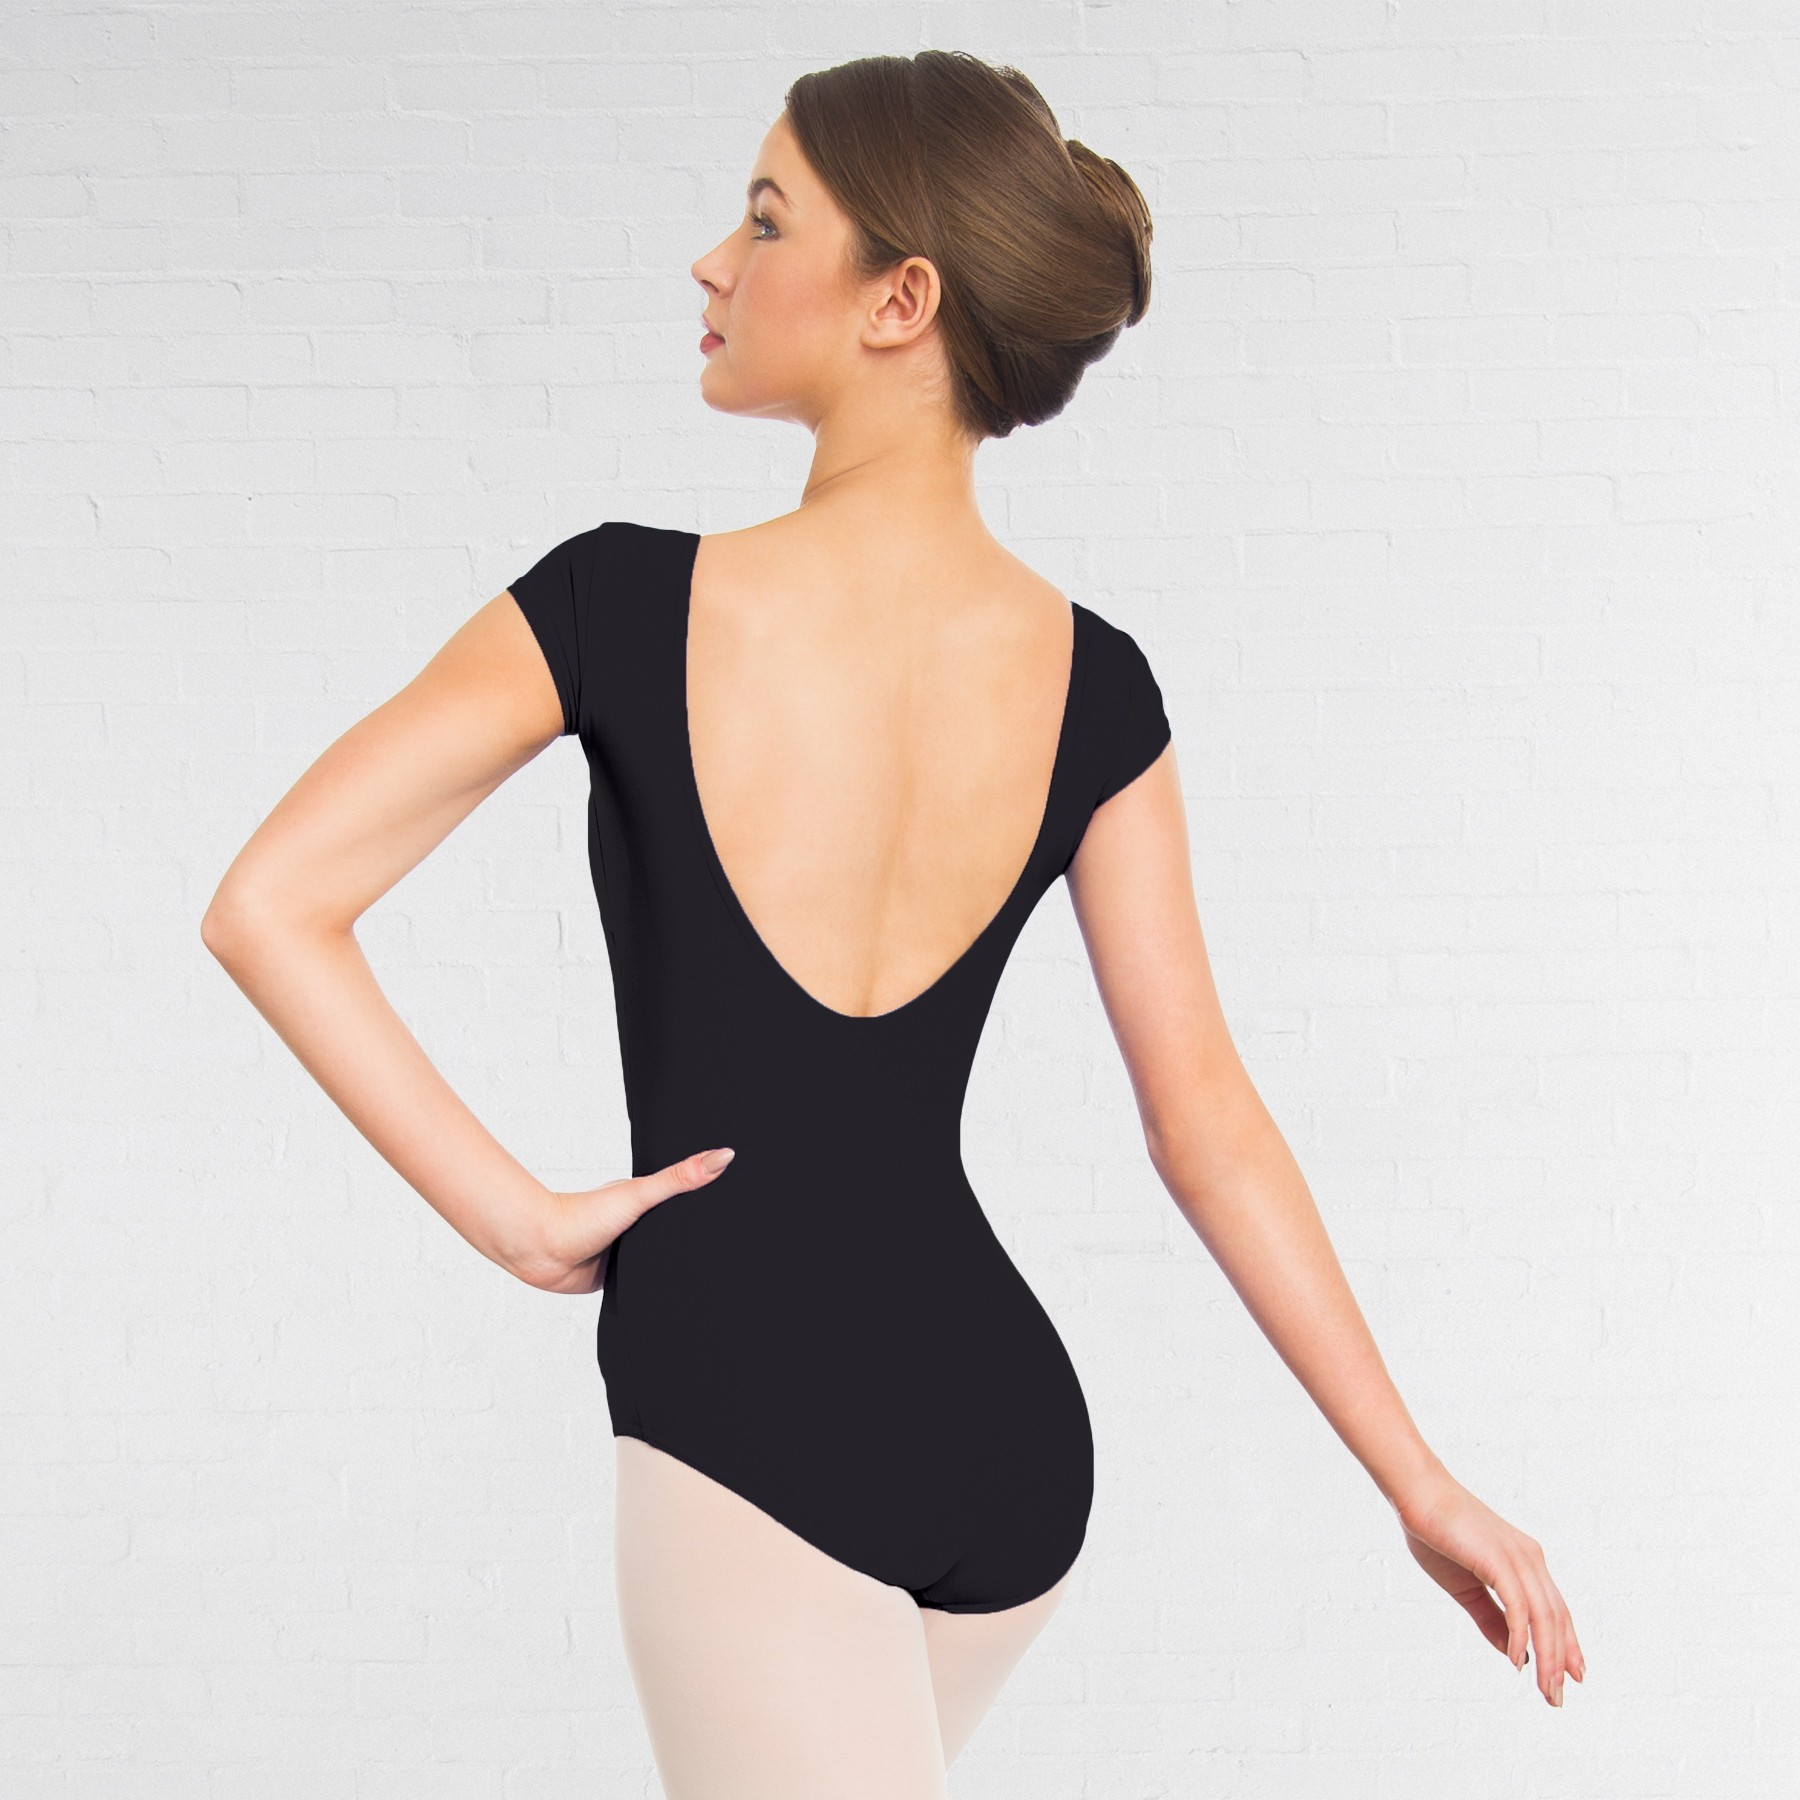 7175e8f76 1st Position Lauren Cap Sleeve Leotard (Matt Nylon) (Black ...